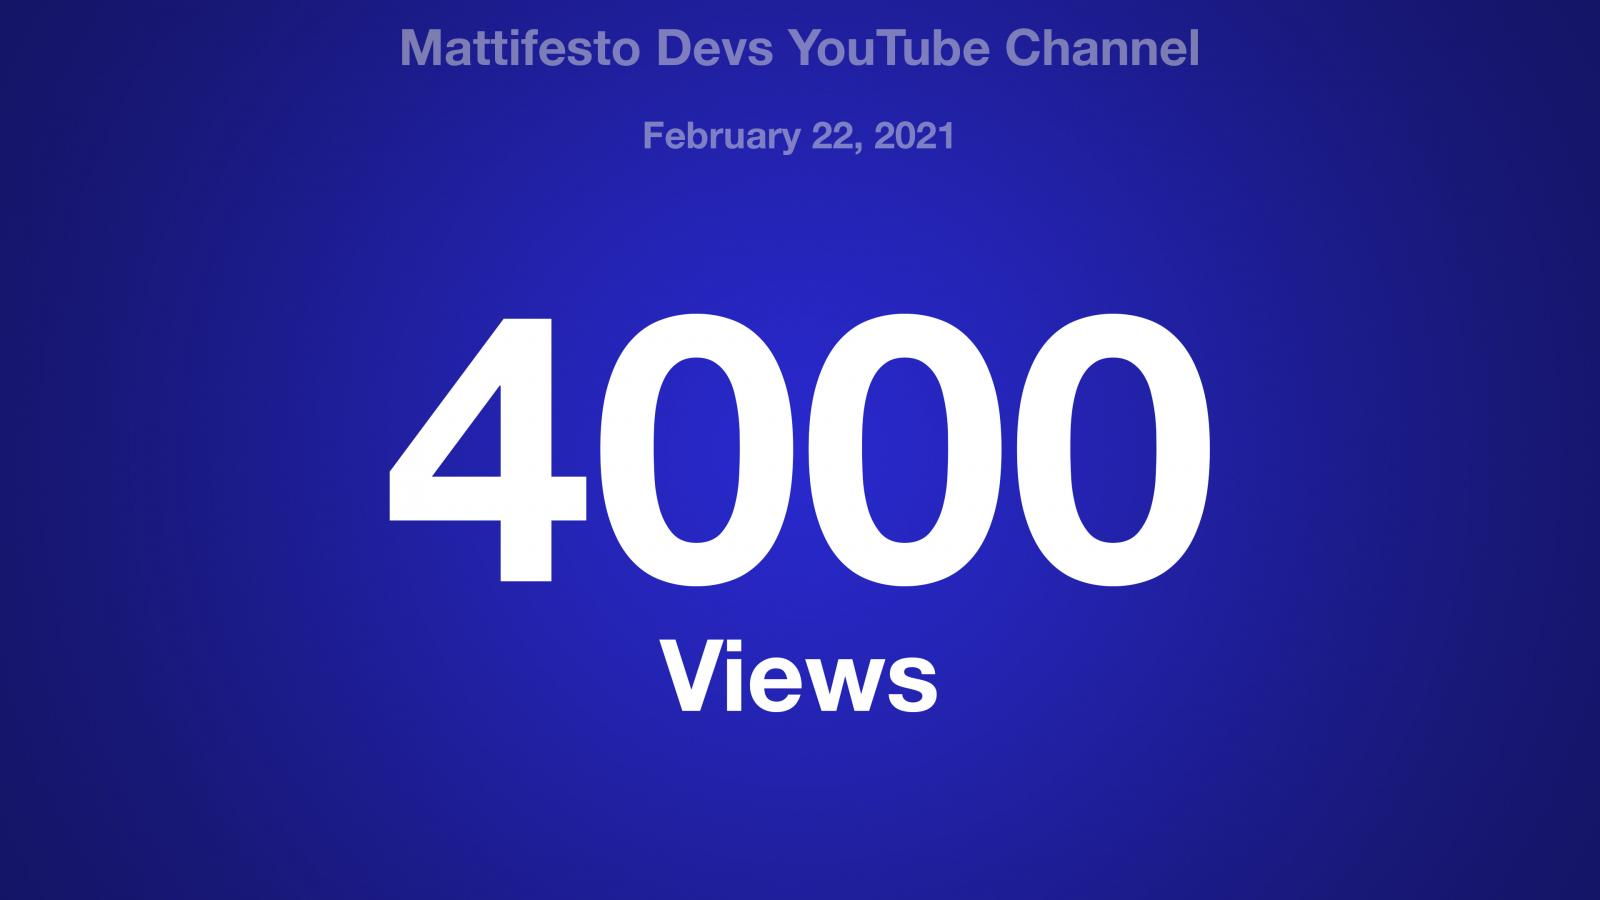 Mattifesto Devs YouTube Channel, February 22, 2021, 4000 Views